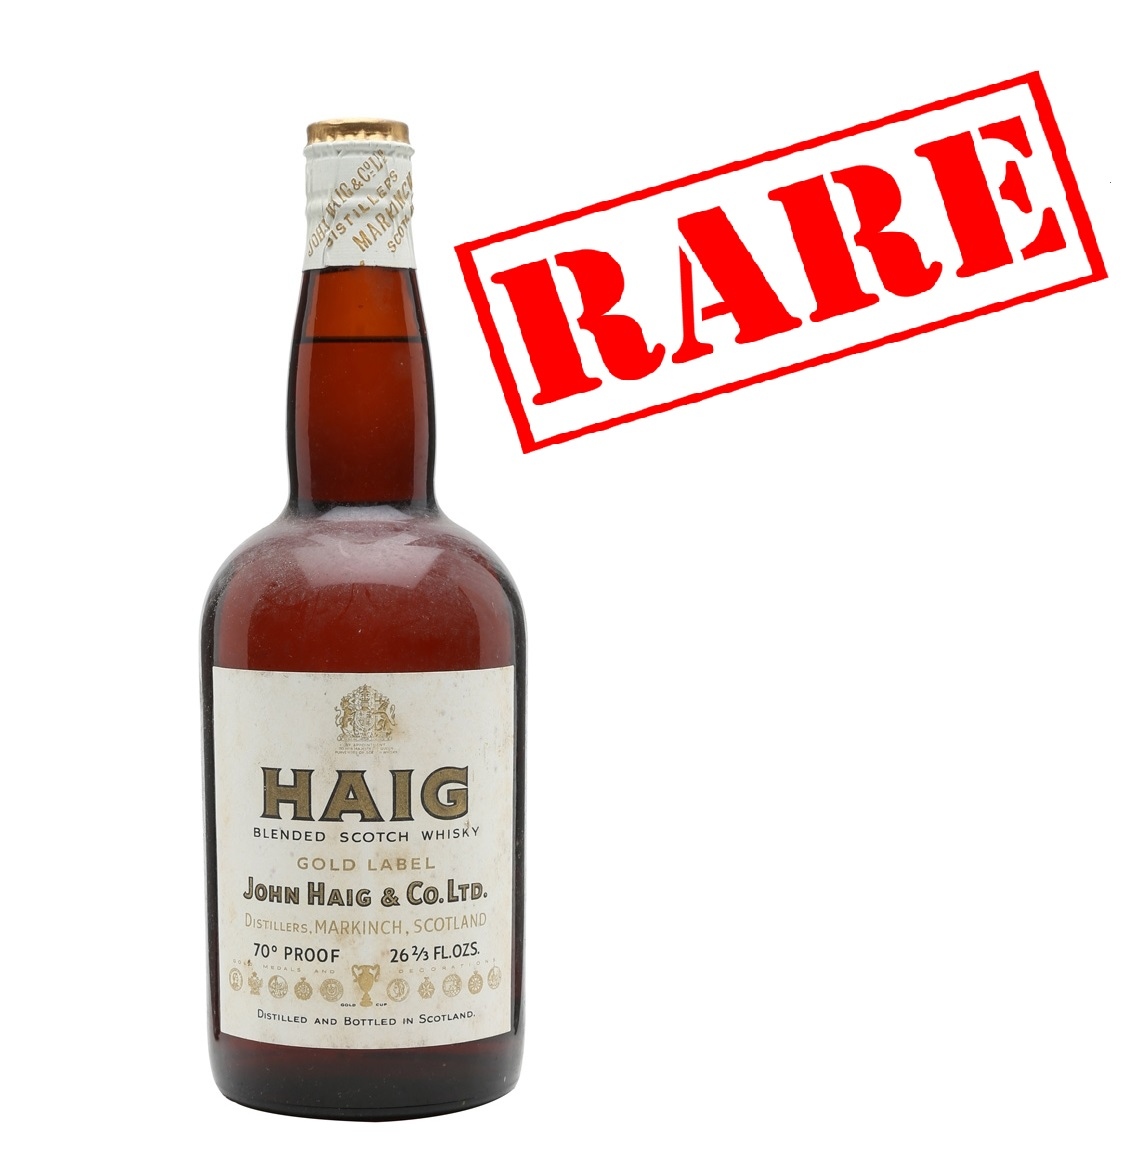 This is a picture of Impertinent Haig Gold Label Original Blended Scotch Whisky